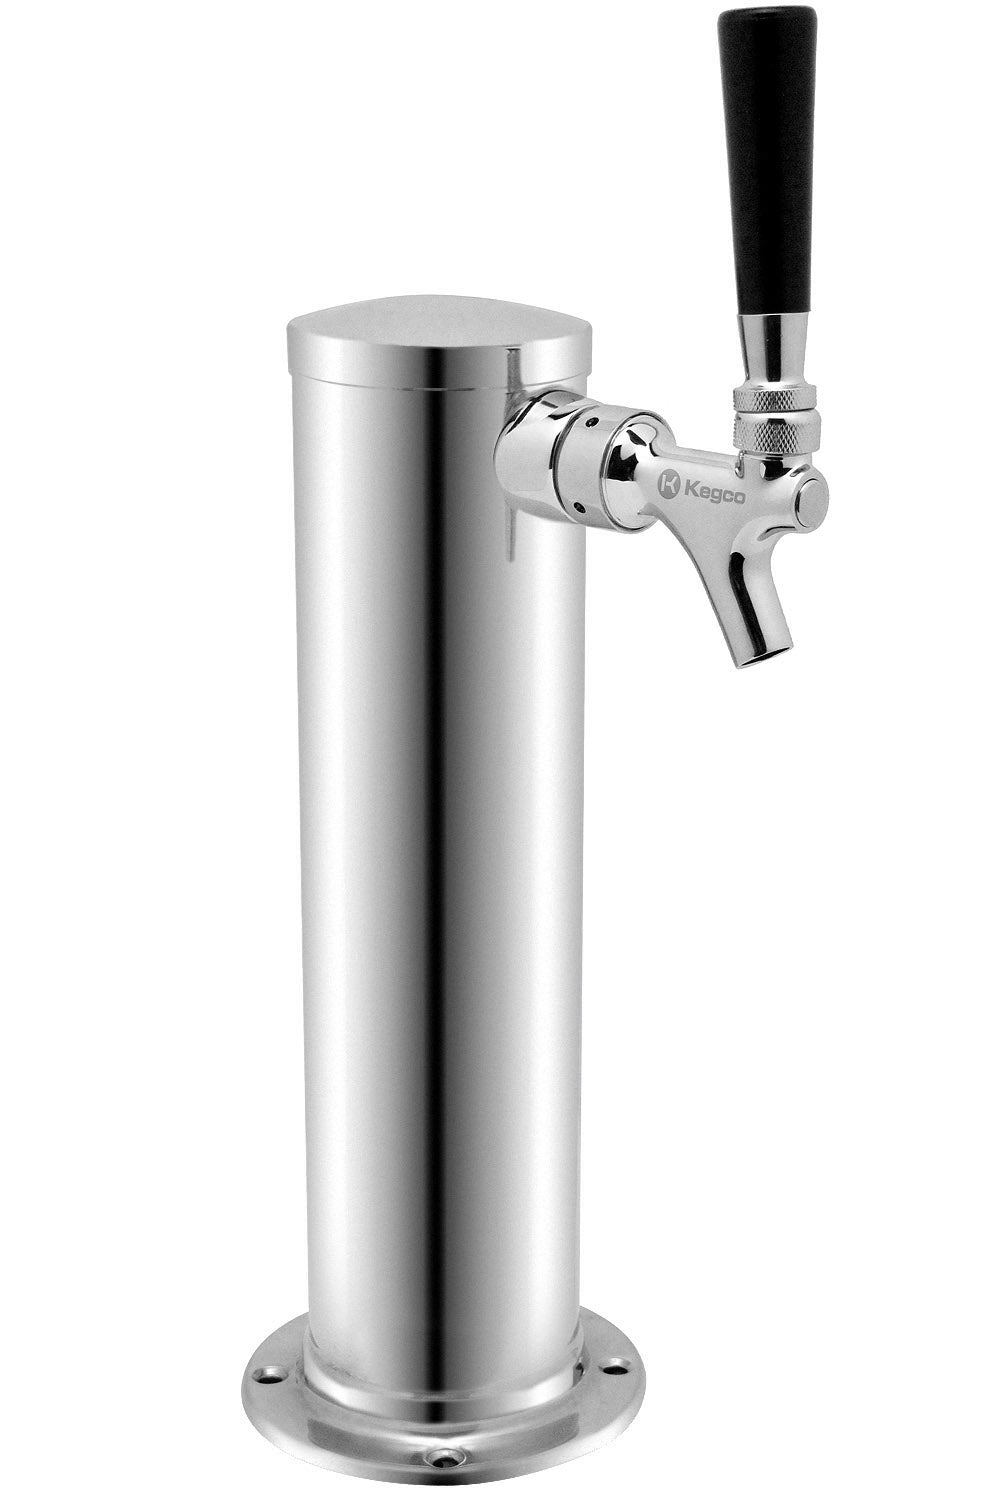 """Details about  /NEW KEGCO 3/"""" SS SINGLE FAUCET TOWER POLISHED STAINLESS STEEL MODEL DT1F-145S"""